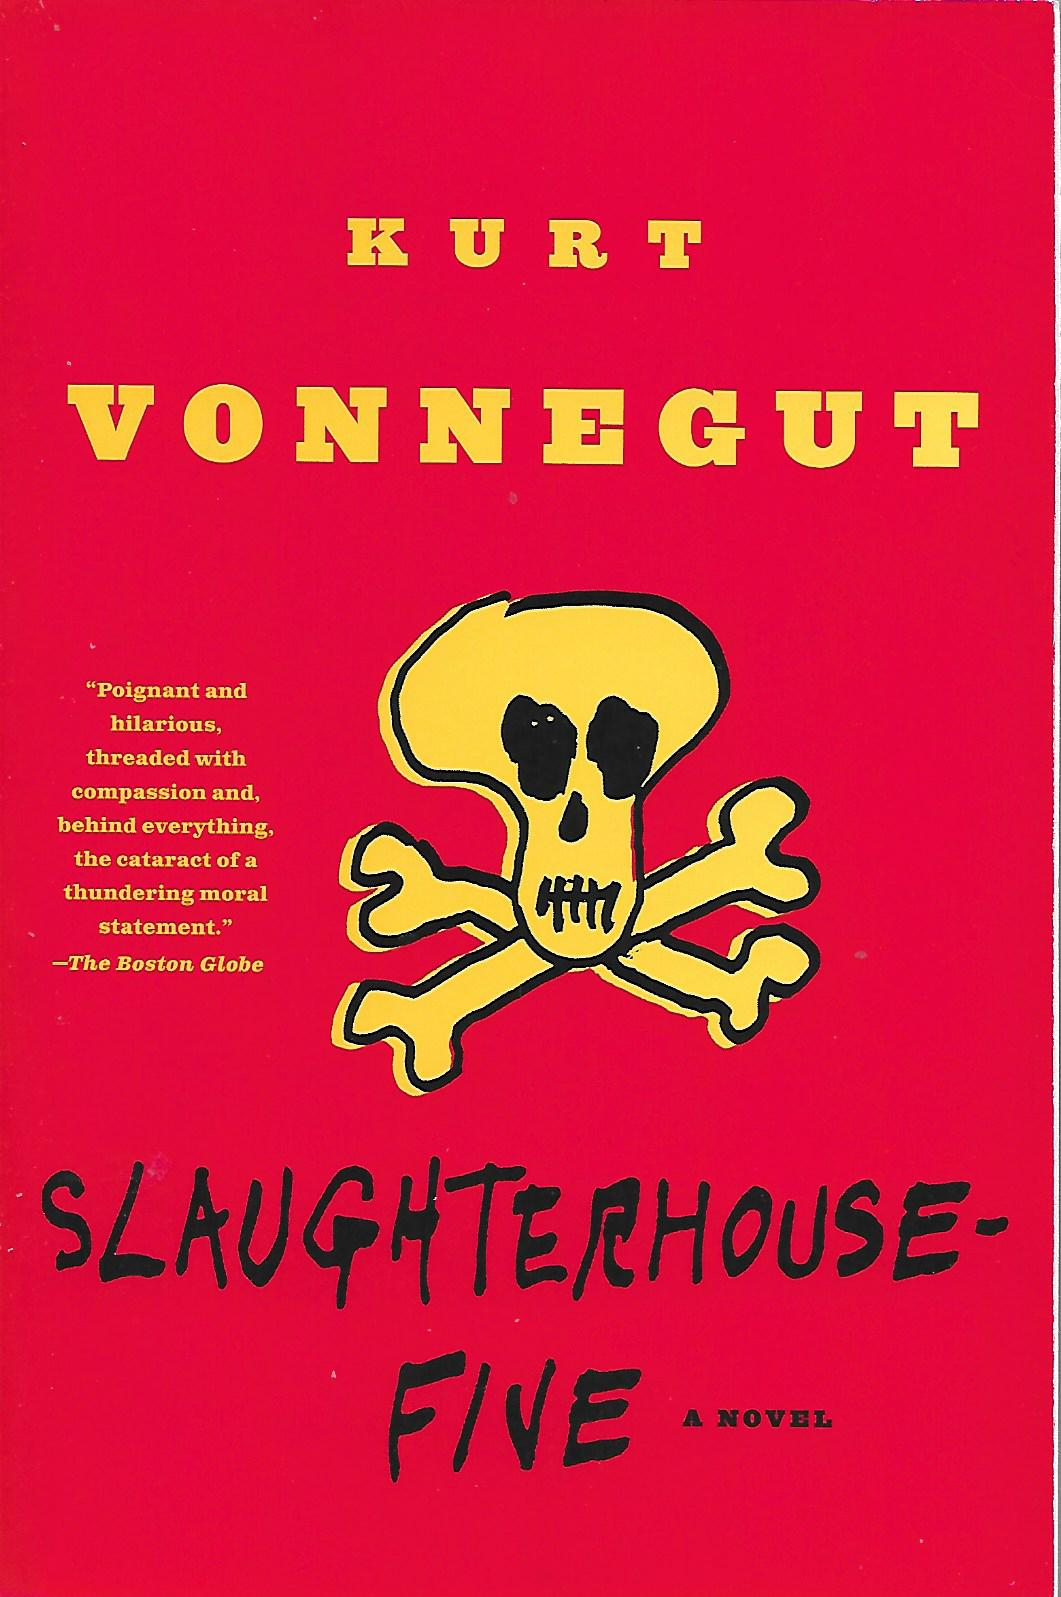 an analysis of the death of valencia pilgrim in the novel slaughterhouse five by kurt vonnegut Kurt vonnegut is probably most associated with the 1960s and its crazy experimental fiction oh yeah, but it also follows billy pilgrim as he gets captured by aliens, put in a zoo as part of the slaughterhouse-five expressed the popular horror at the idea of war—this novel doesn't pull any.